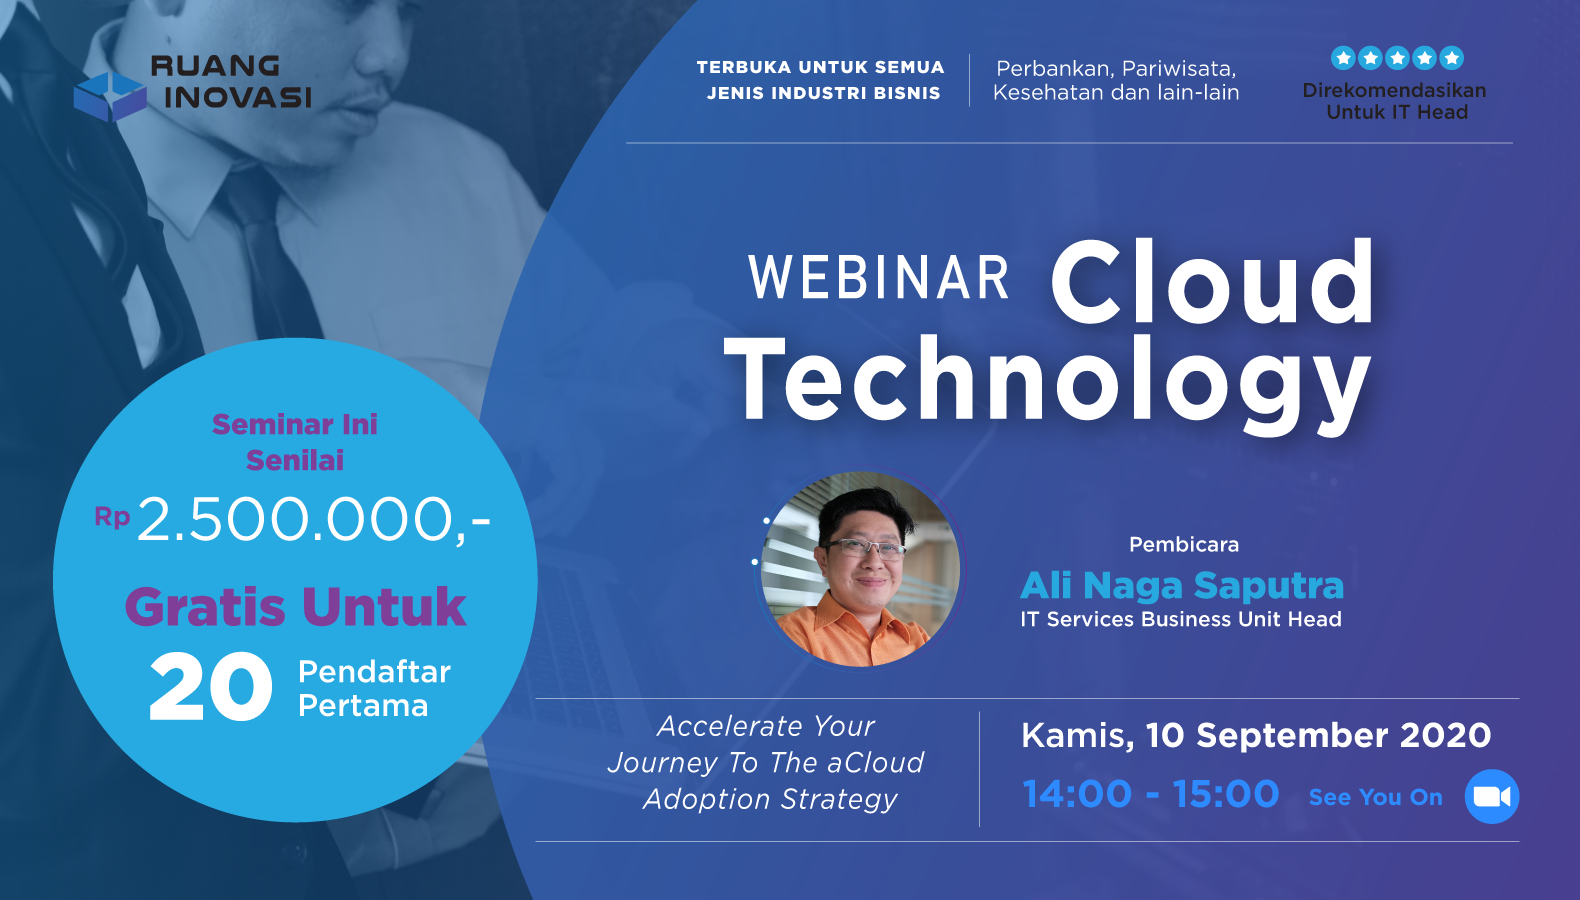 AdIns Presents Ruang Inovasi Cloud Technology Webinar